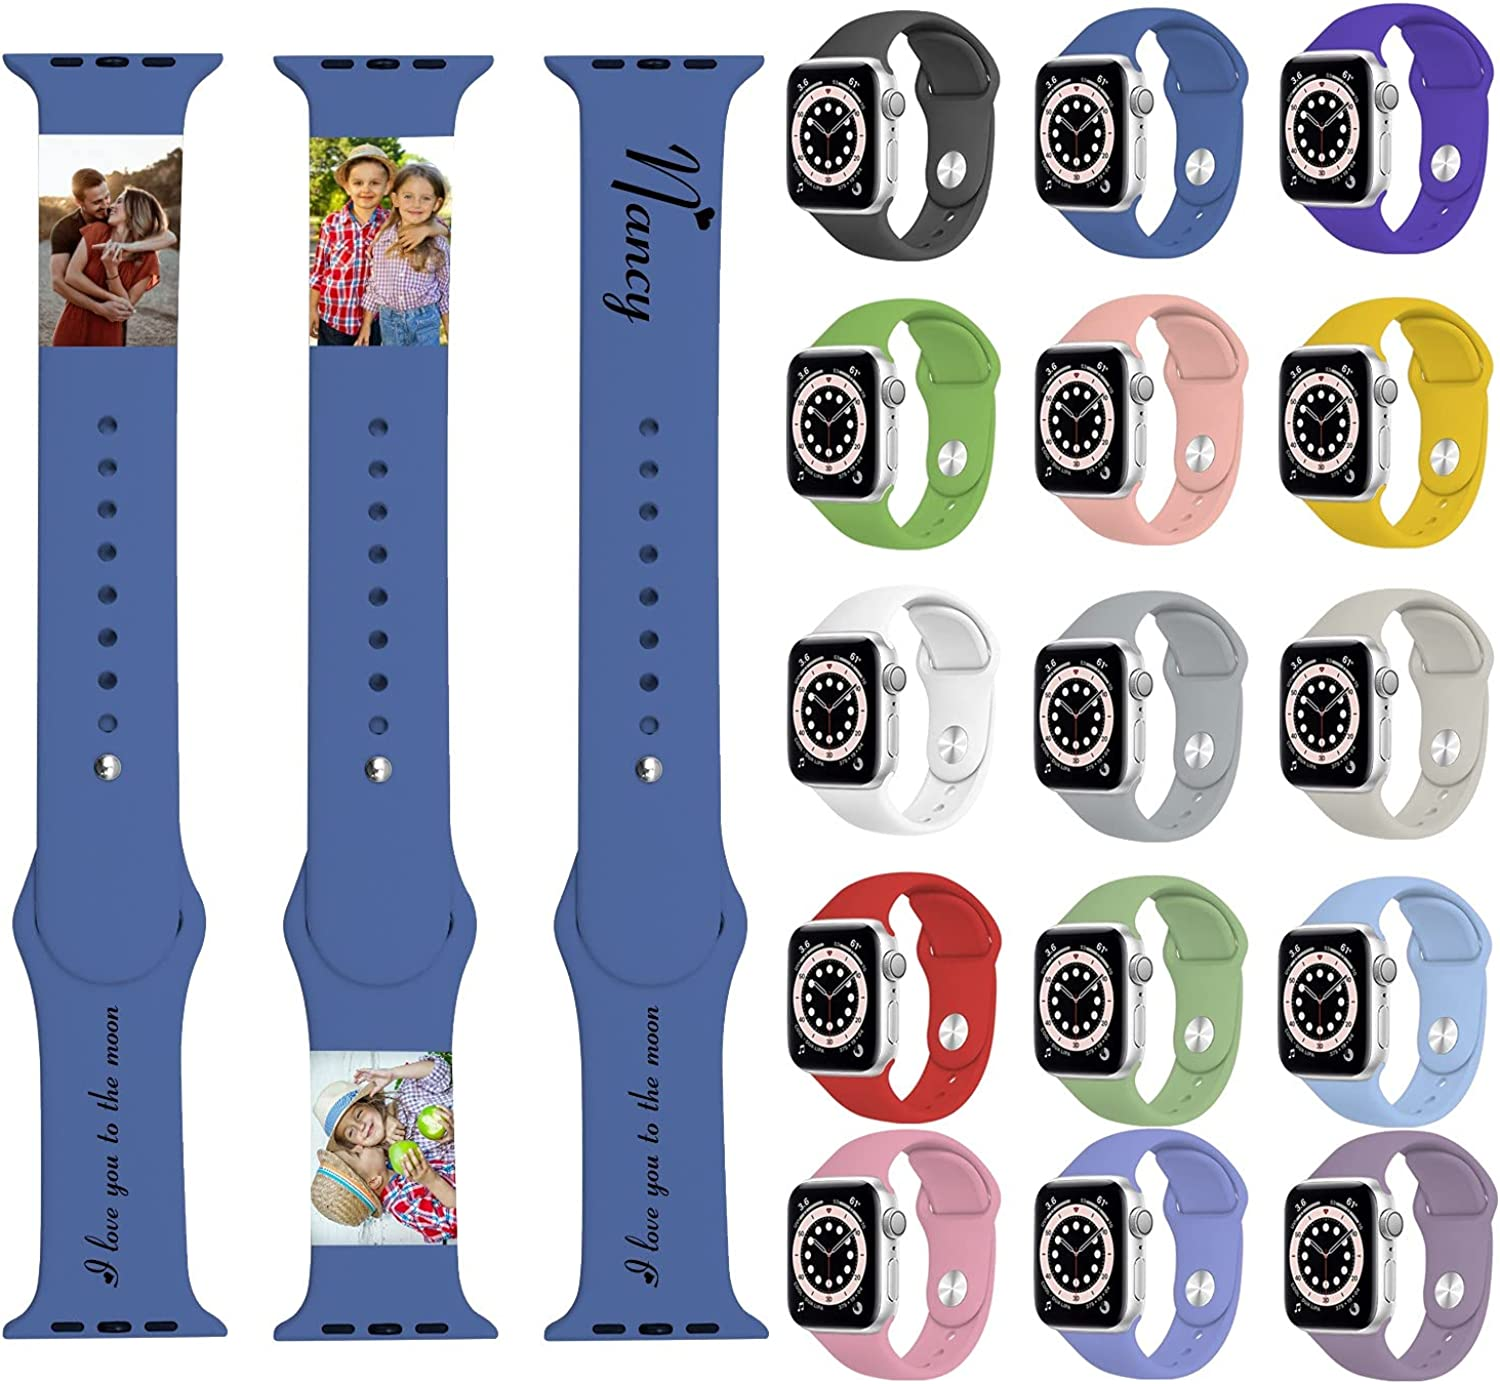 Custom Watch Band for Apple Personalized with Pictures Photo Name Text for Men Women 38mm 40mm 42mm 44mm Soft Silicone Sport Wristbands Replacement Strap for iWatch Series SE 6 5 4 3 2 1